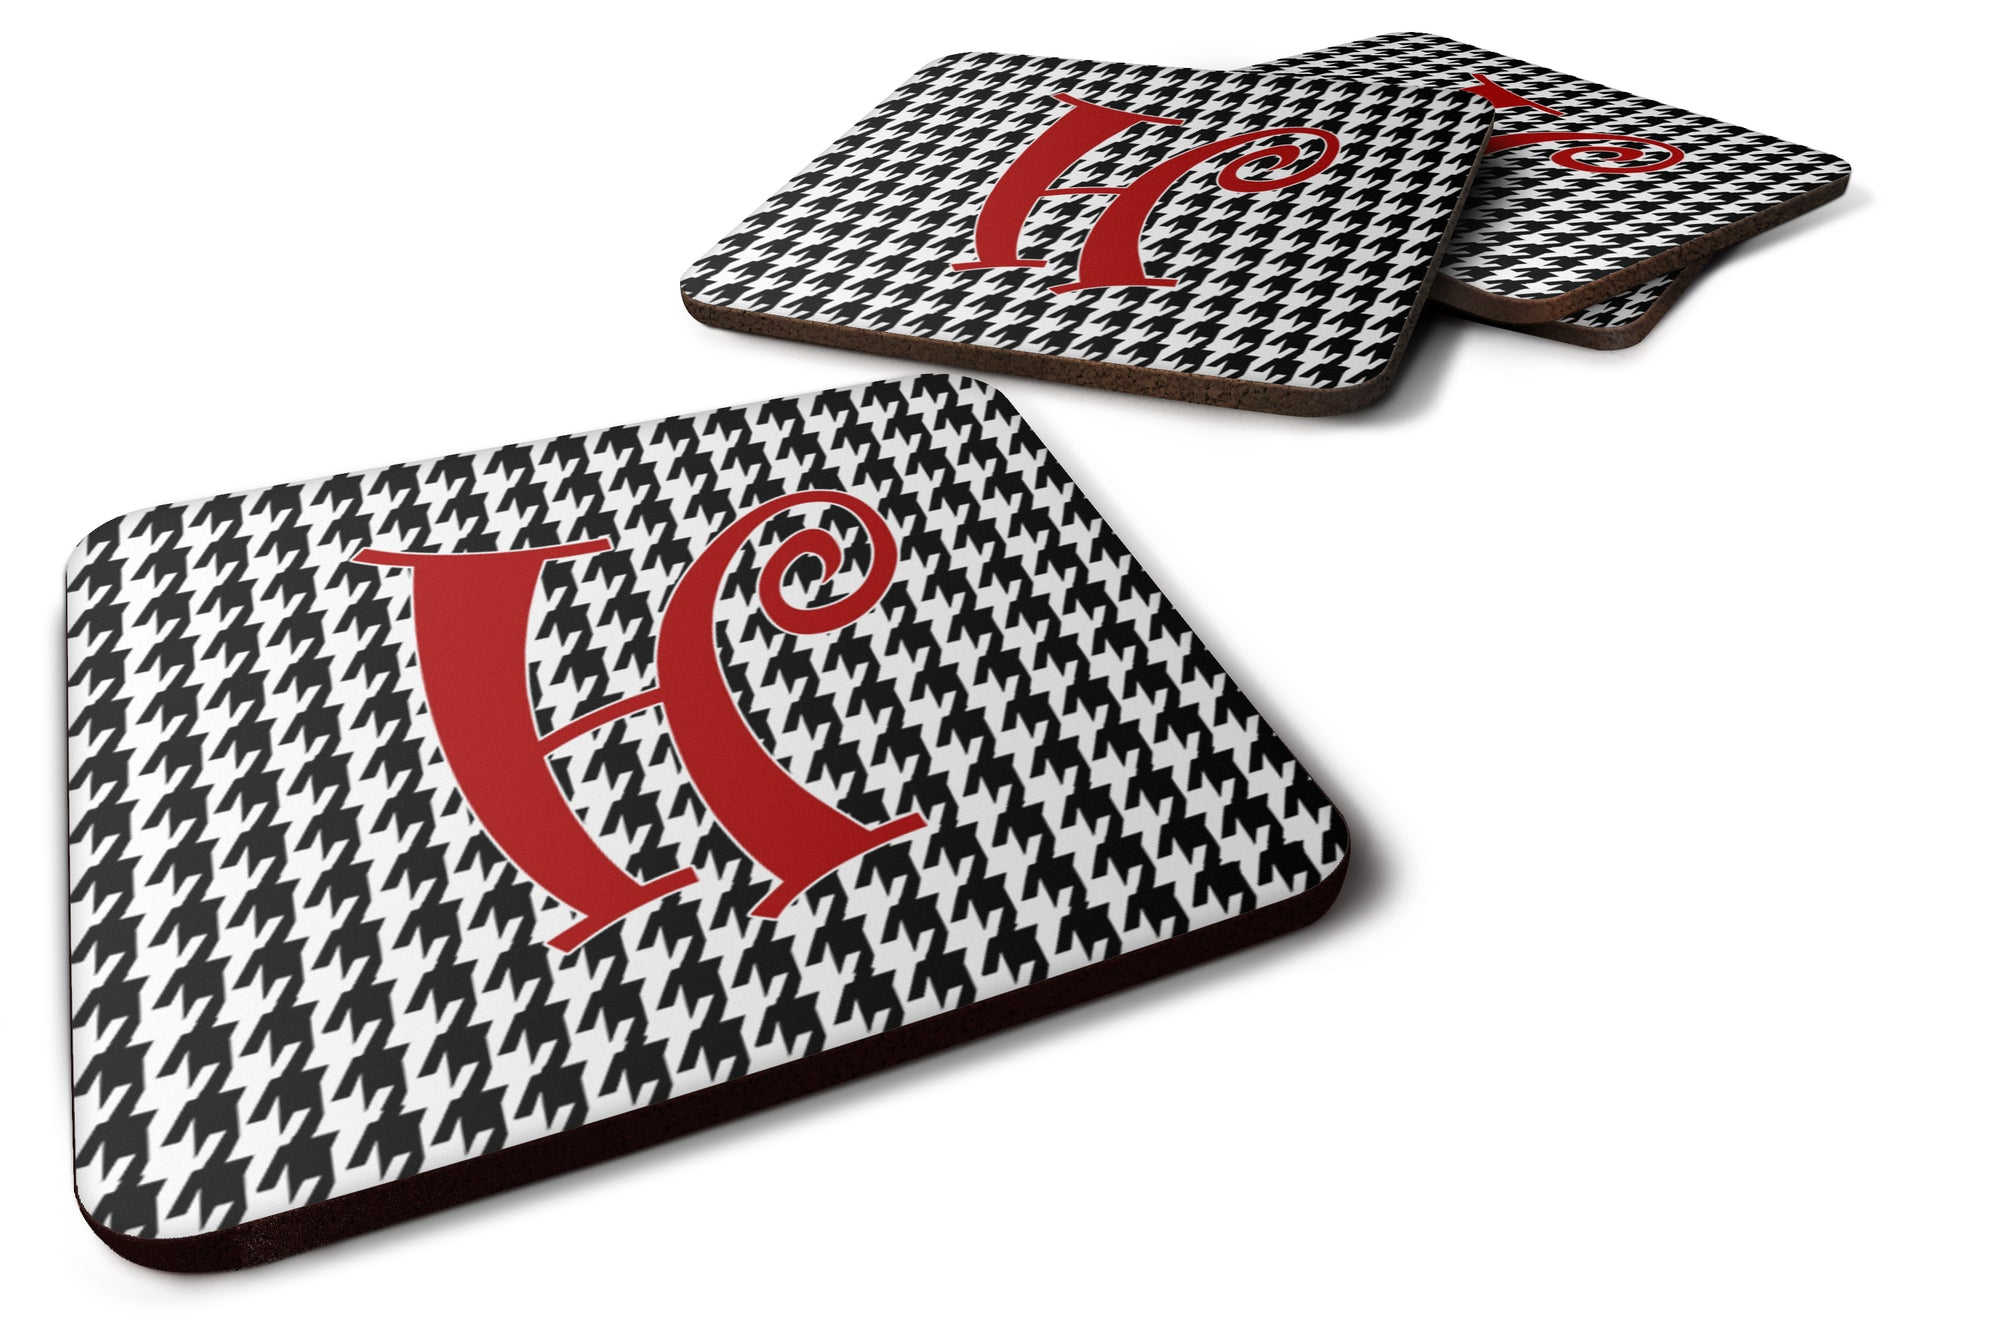 Set of 4 Monogram - Houndstooth Black Foam Coasters Initial Letter H by Caroline's Treasures